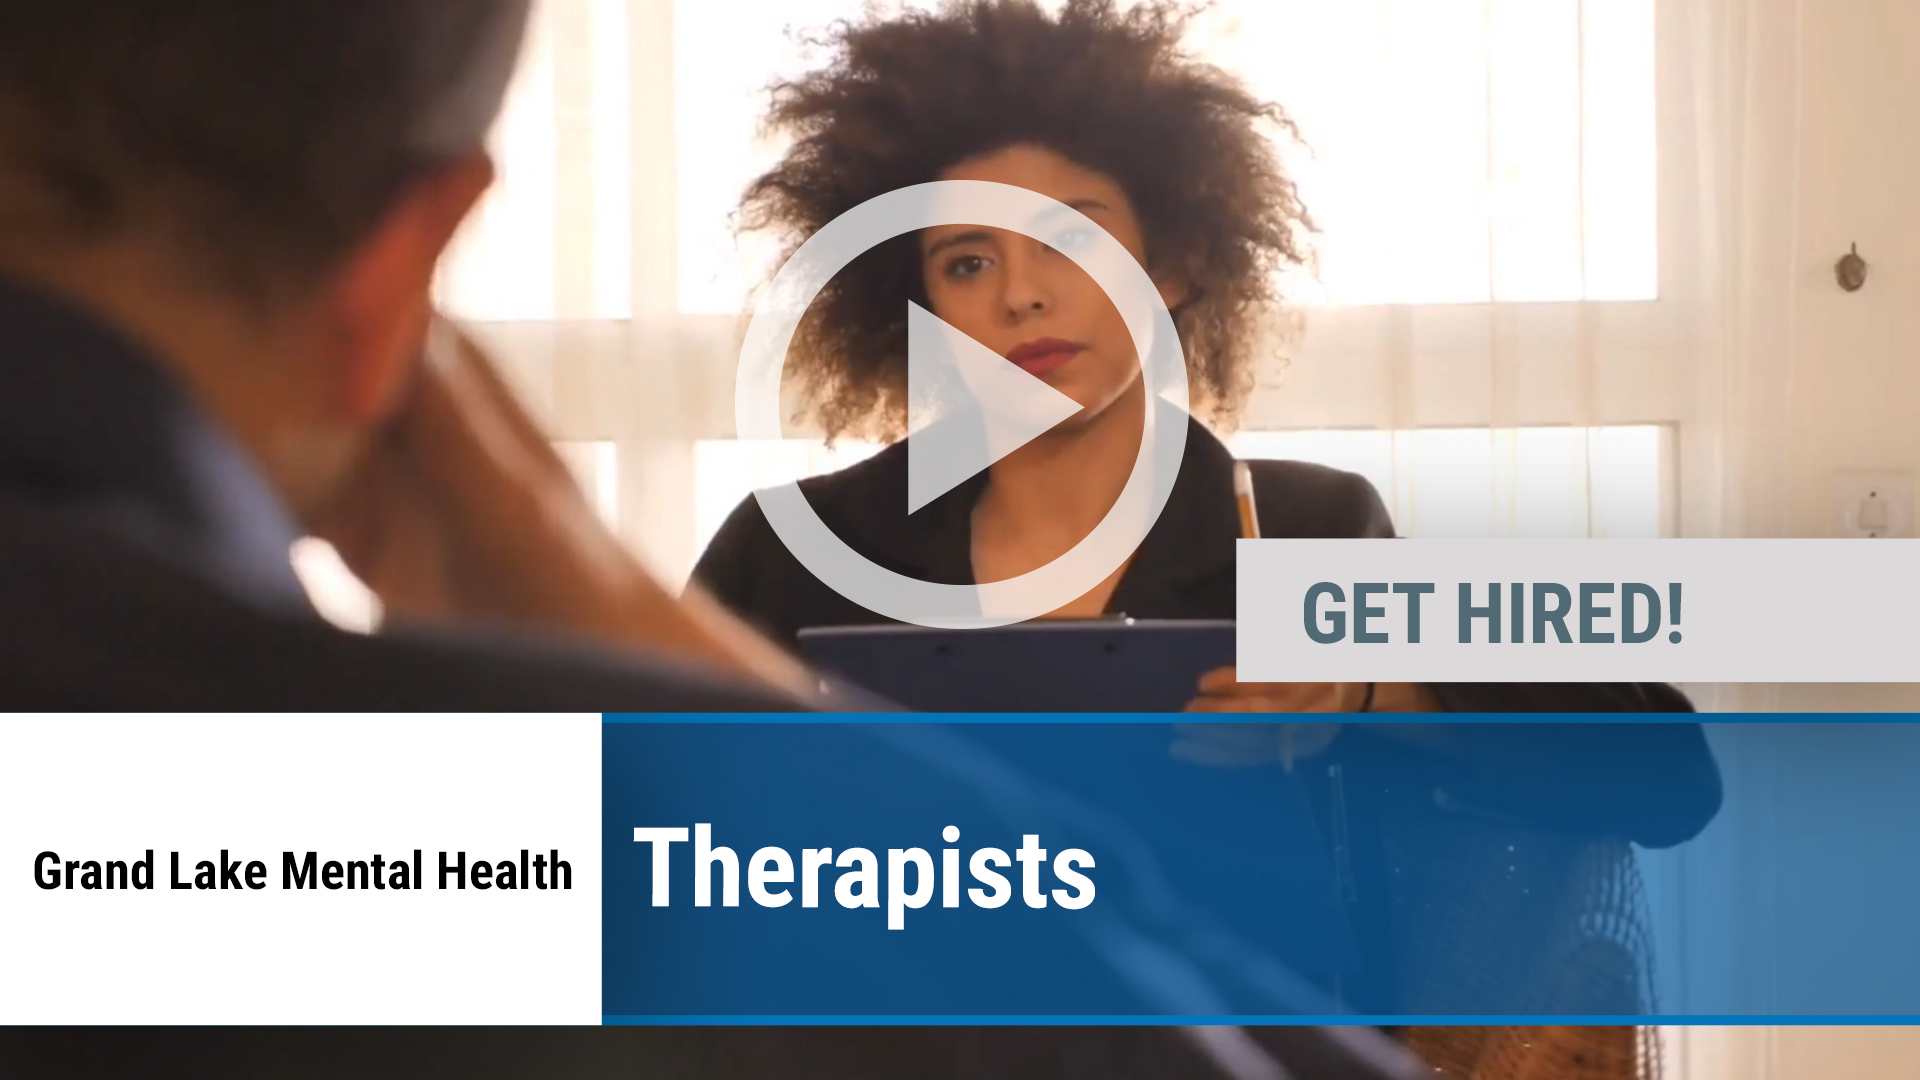 Watch our careers video for available job opening Therapists in Miami, OK